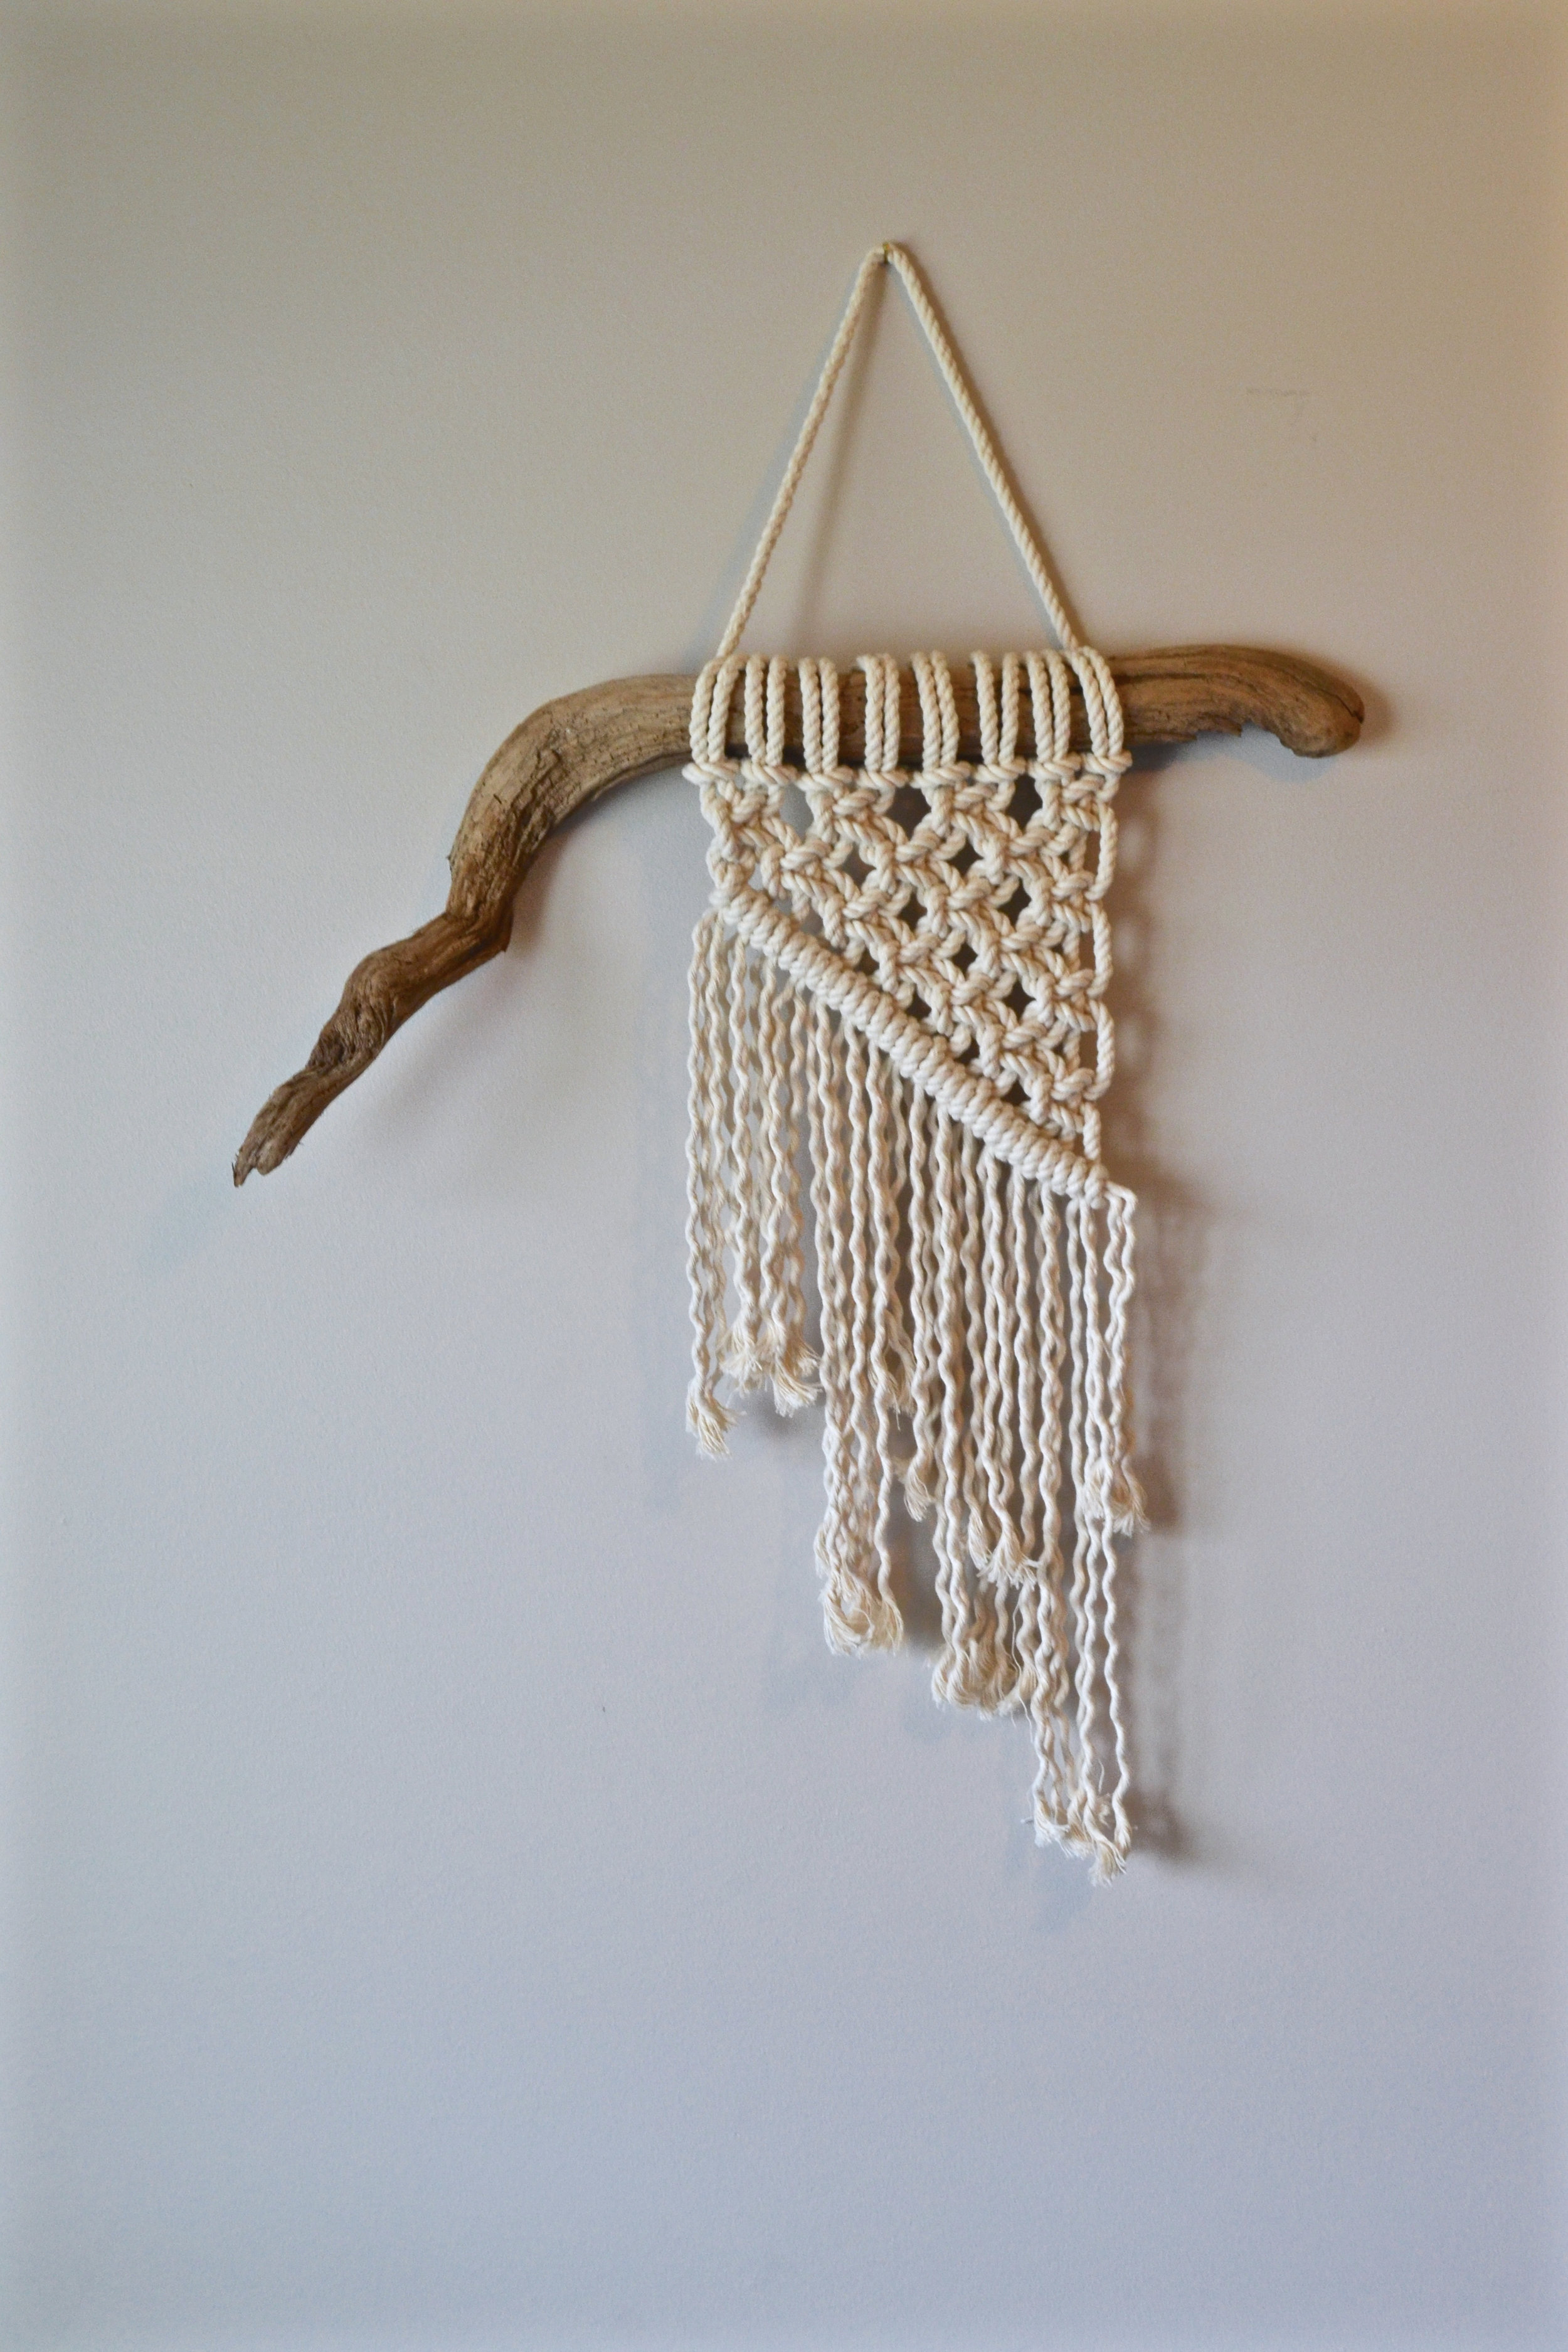 Simple little rope piece - currently resides in our spare bedroom.